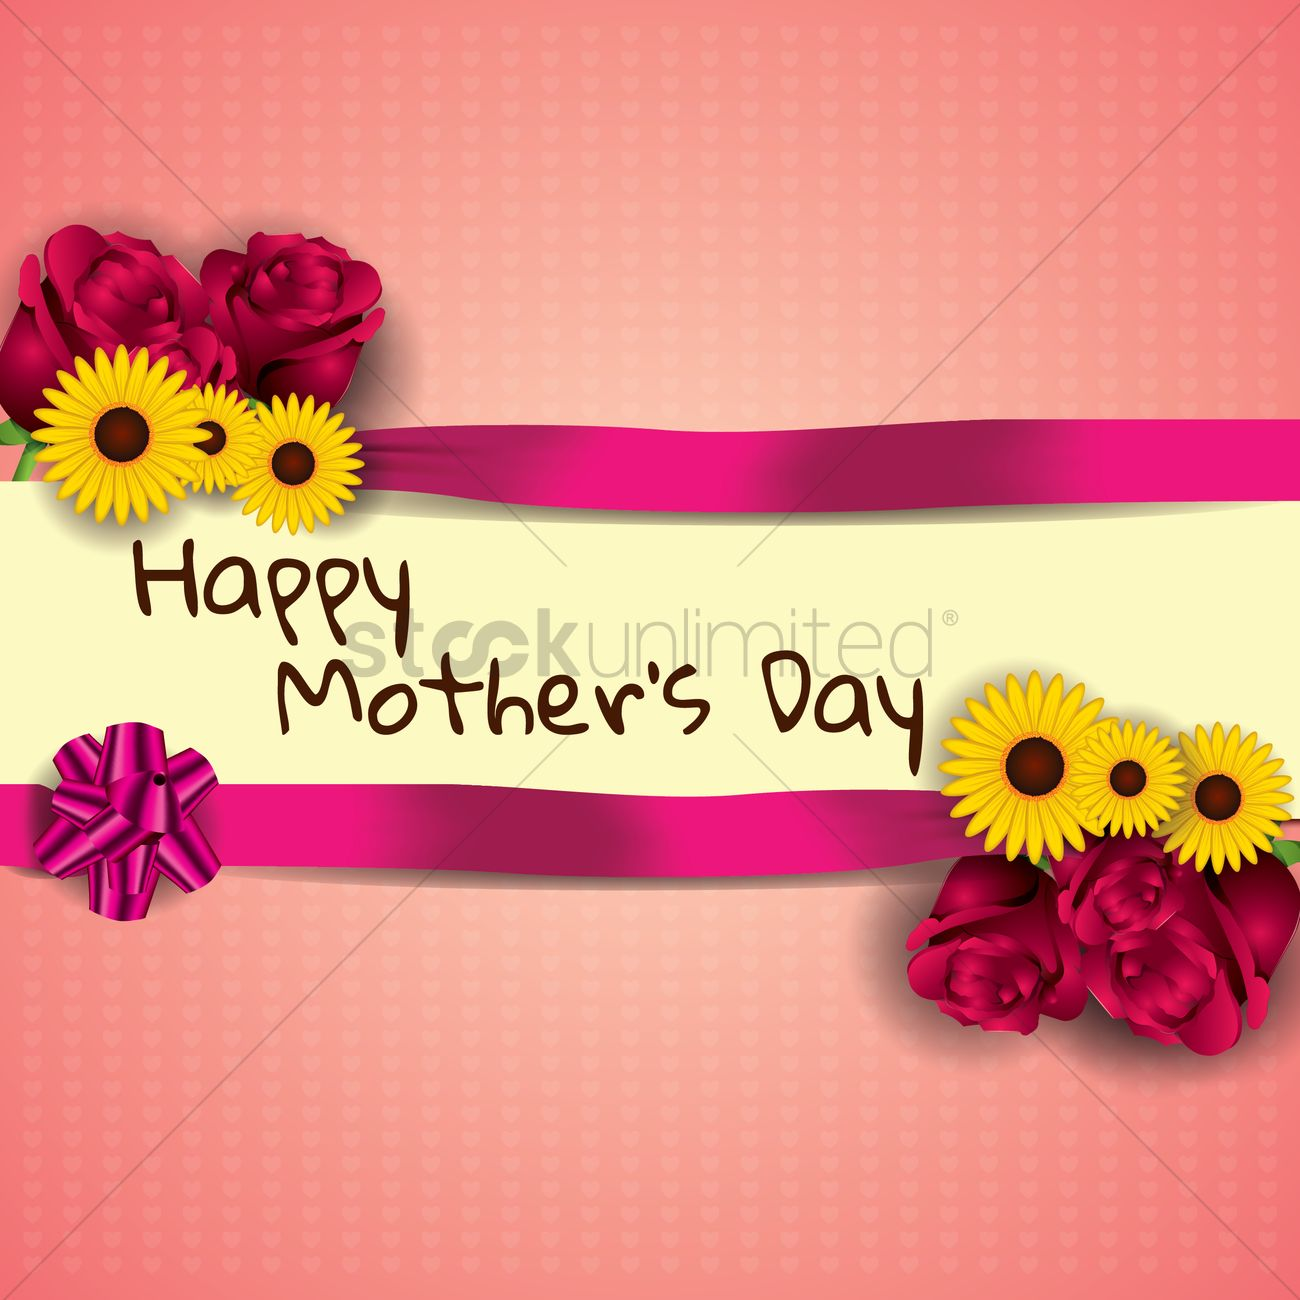 Mothers Day Greeting Design Vector Image 1994020 Stockunlimited